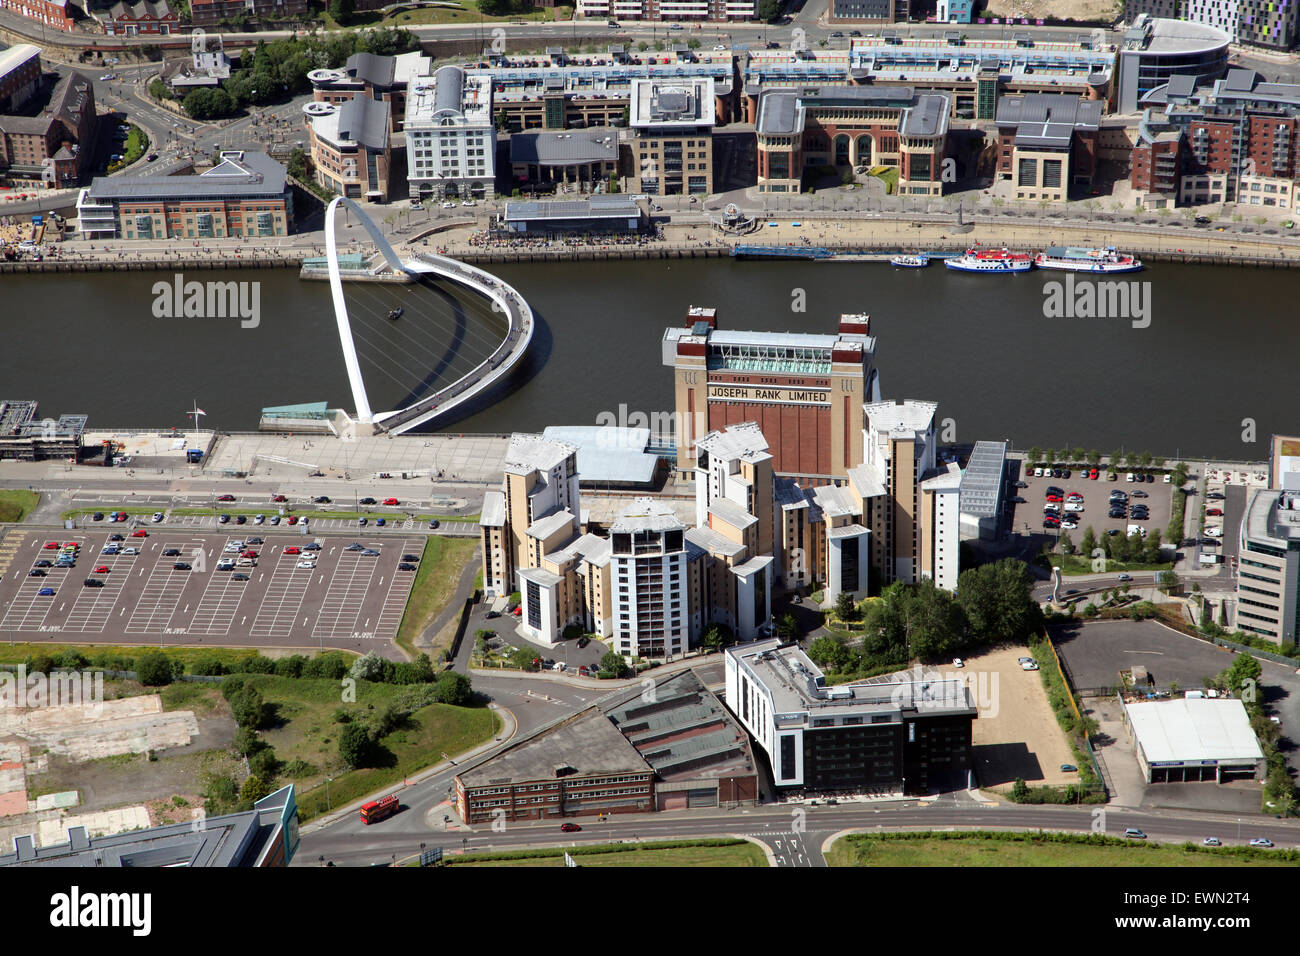 aerial view of The Baltic, River Tyne, Gateshead and Newcastle upon Tyne, UK - Stock Image